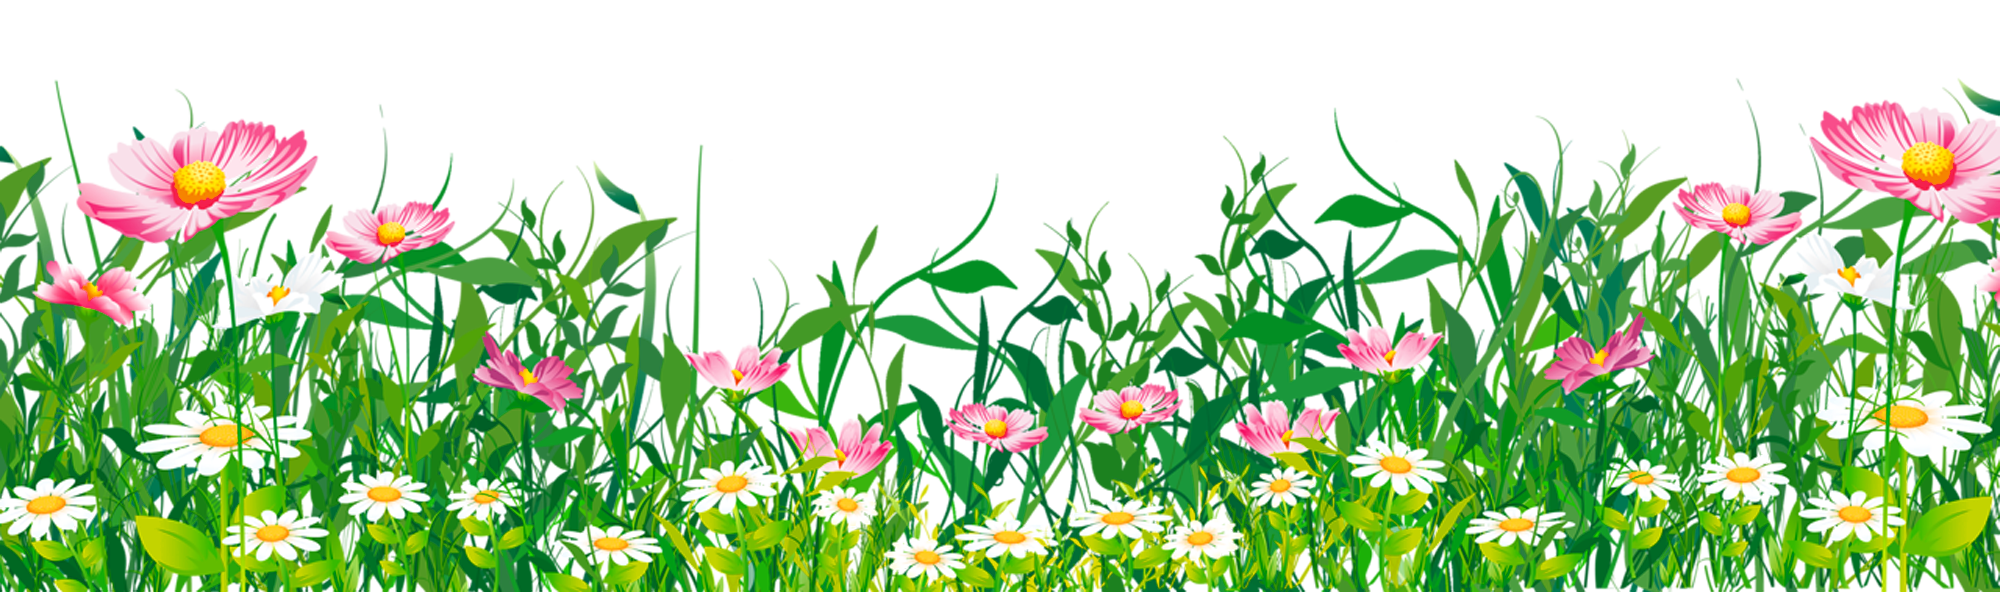 Flower grass clipart png freeuse library Grass with flower clipart - ClipartFest png freeuse library